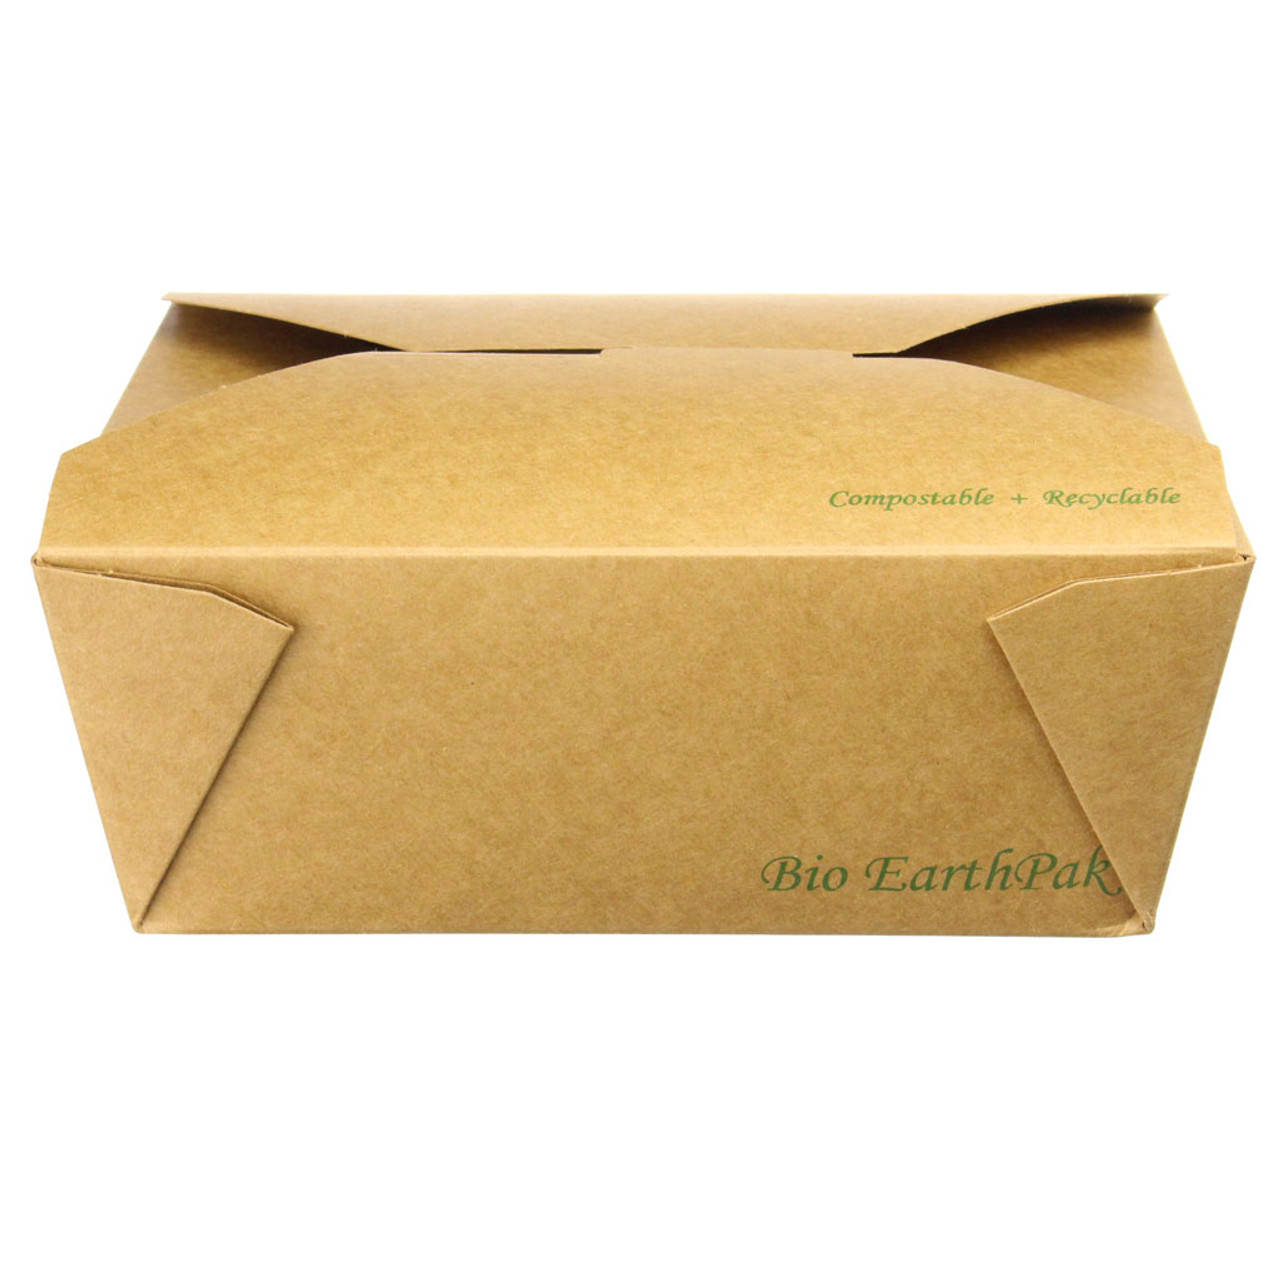 #8 Uncoated Kraft Paper Takeout Container